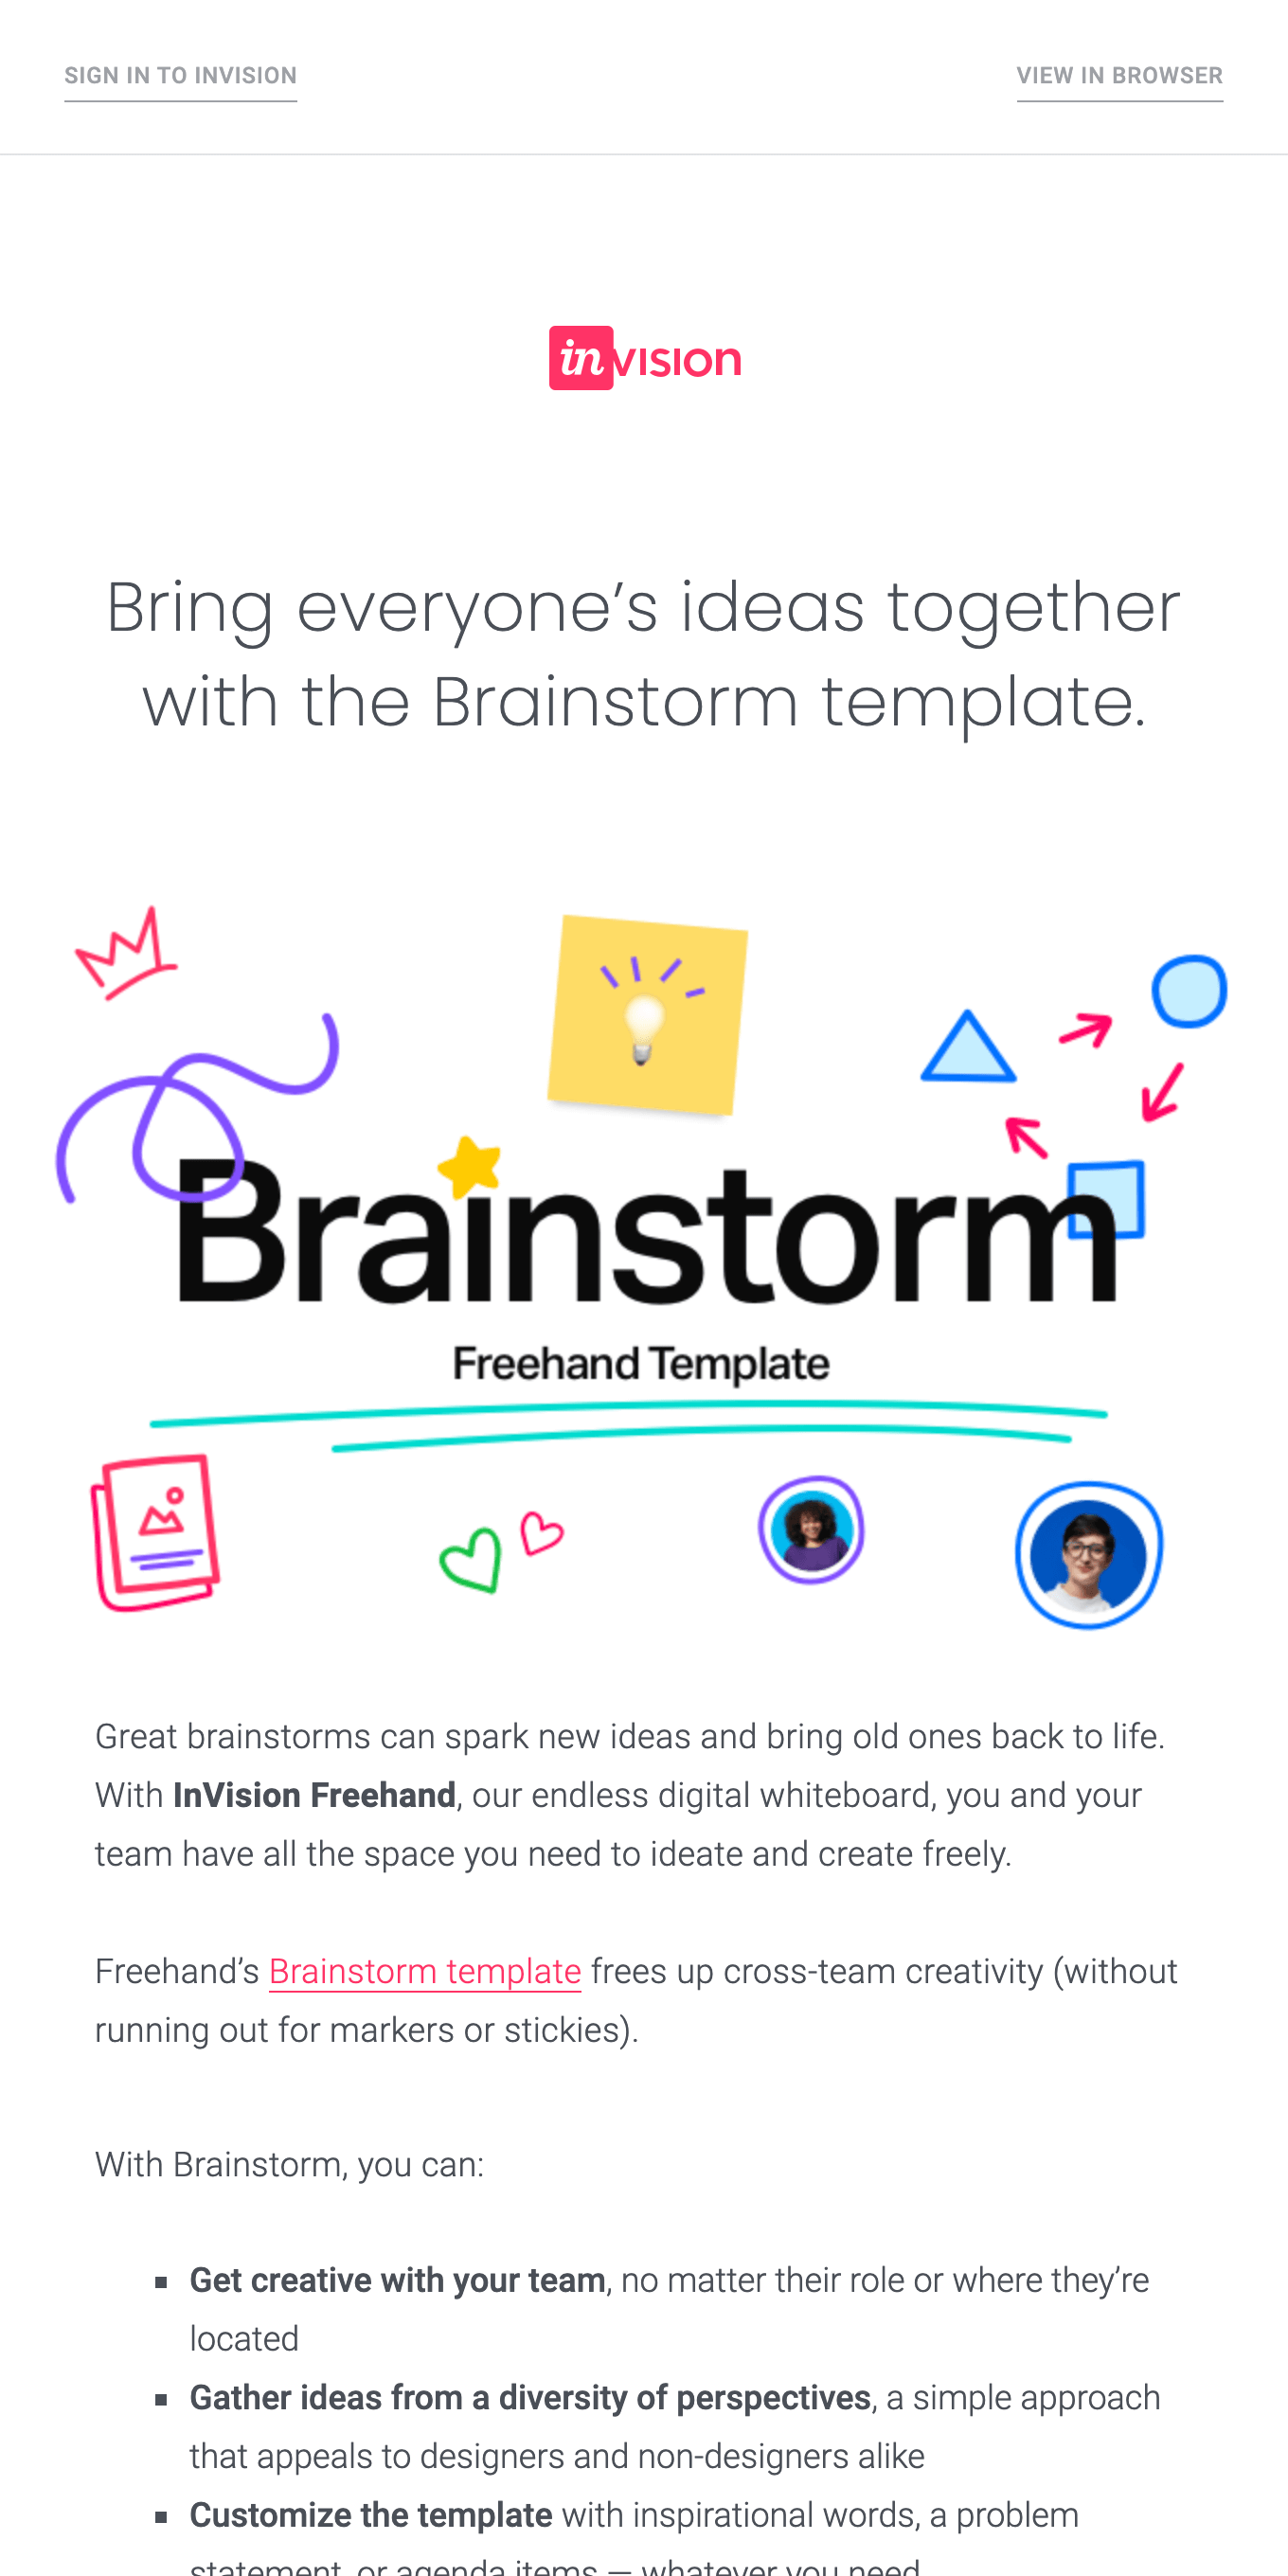 Kick off team brainstorms with Freehand